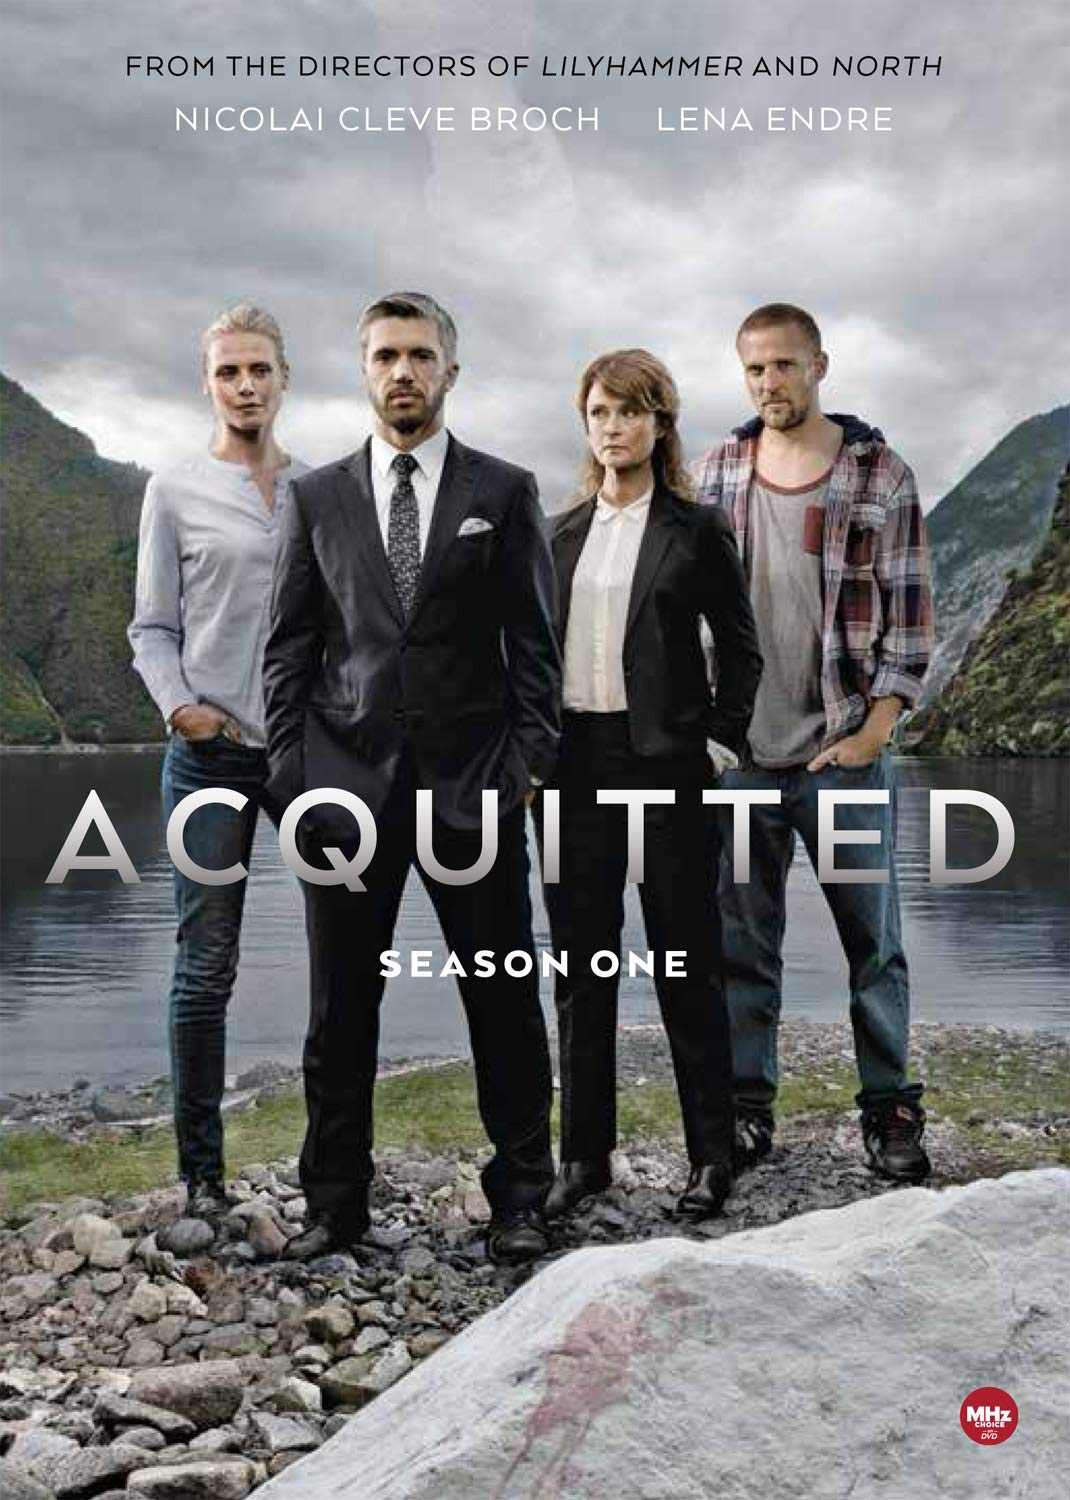 ACQUITTED: SEASON 1 (4PC) / (4PK WS)-ACQUITTED: SEASON 1 (4PC) / (4PK WS)